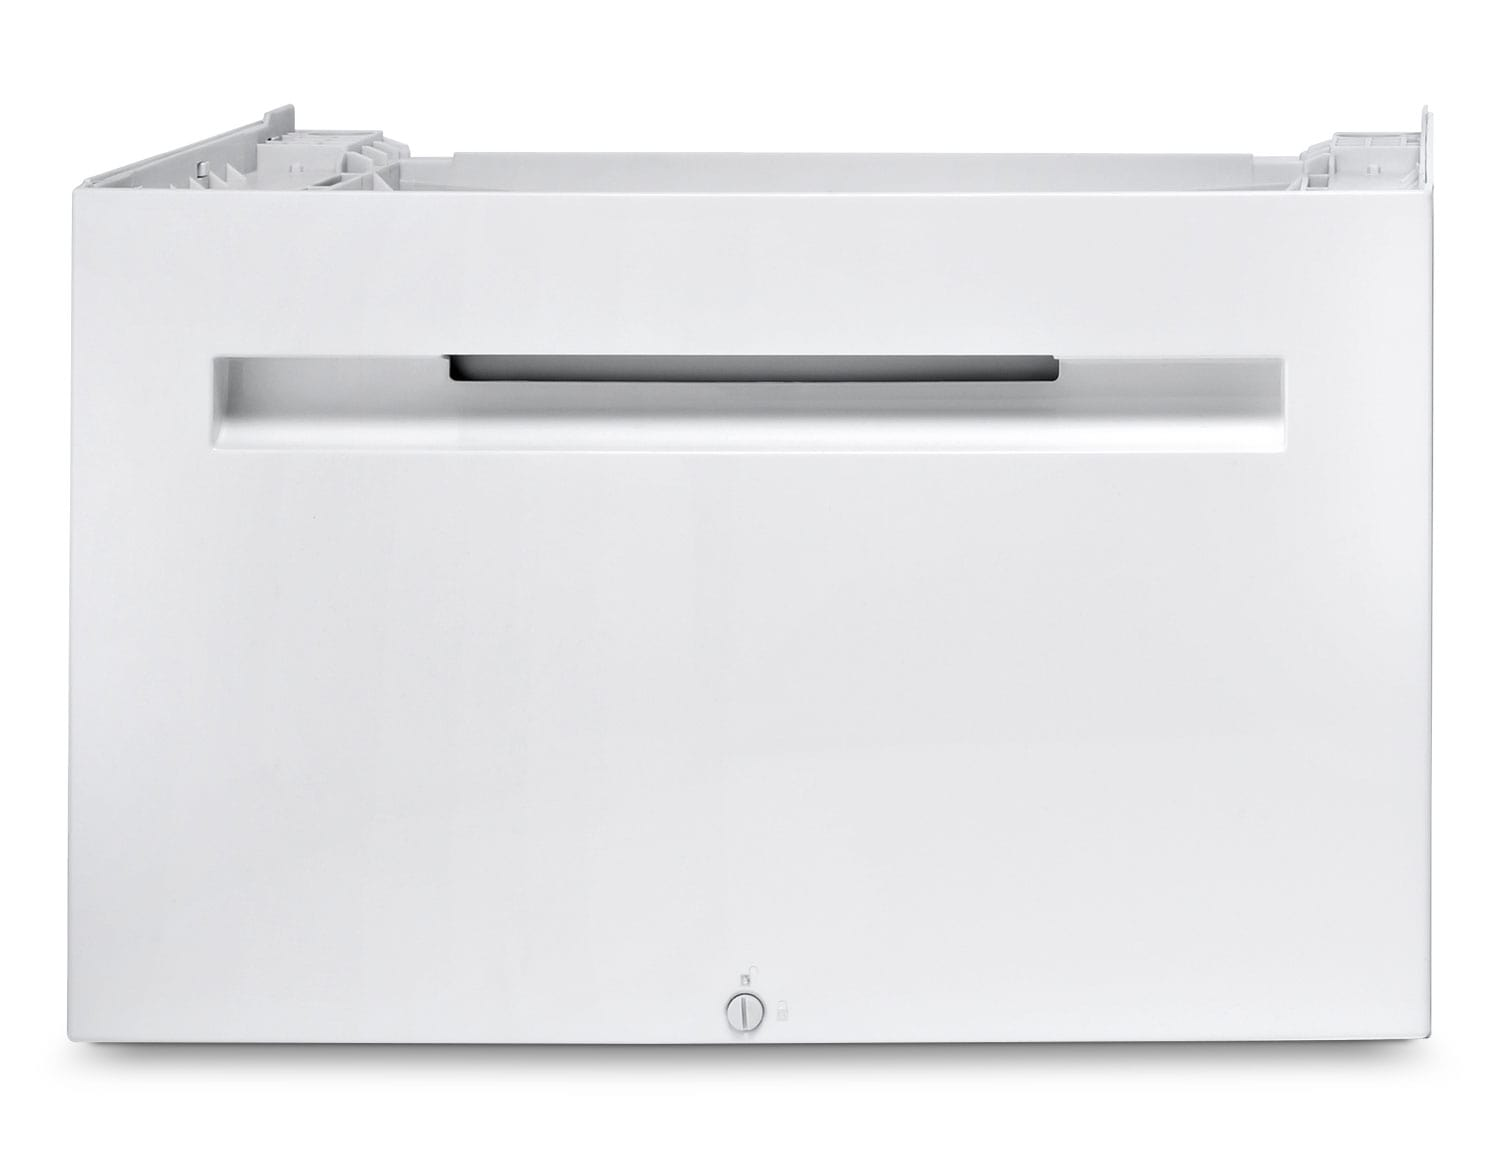 Bosch Dryer Pedestal with Storage Drawer – White